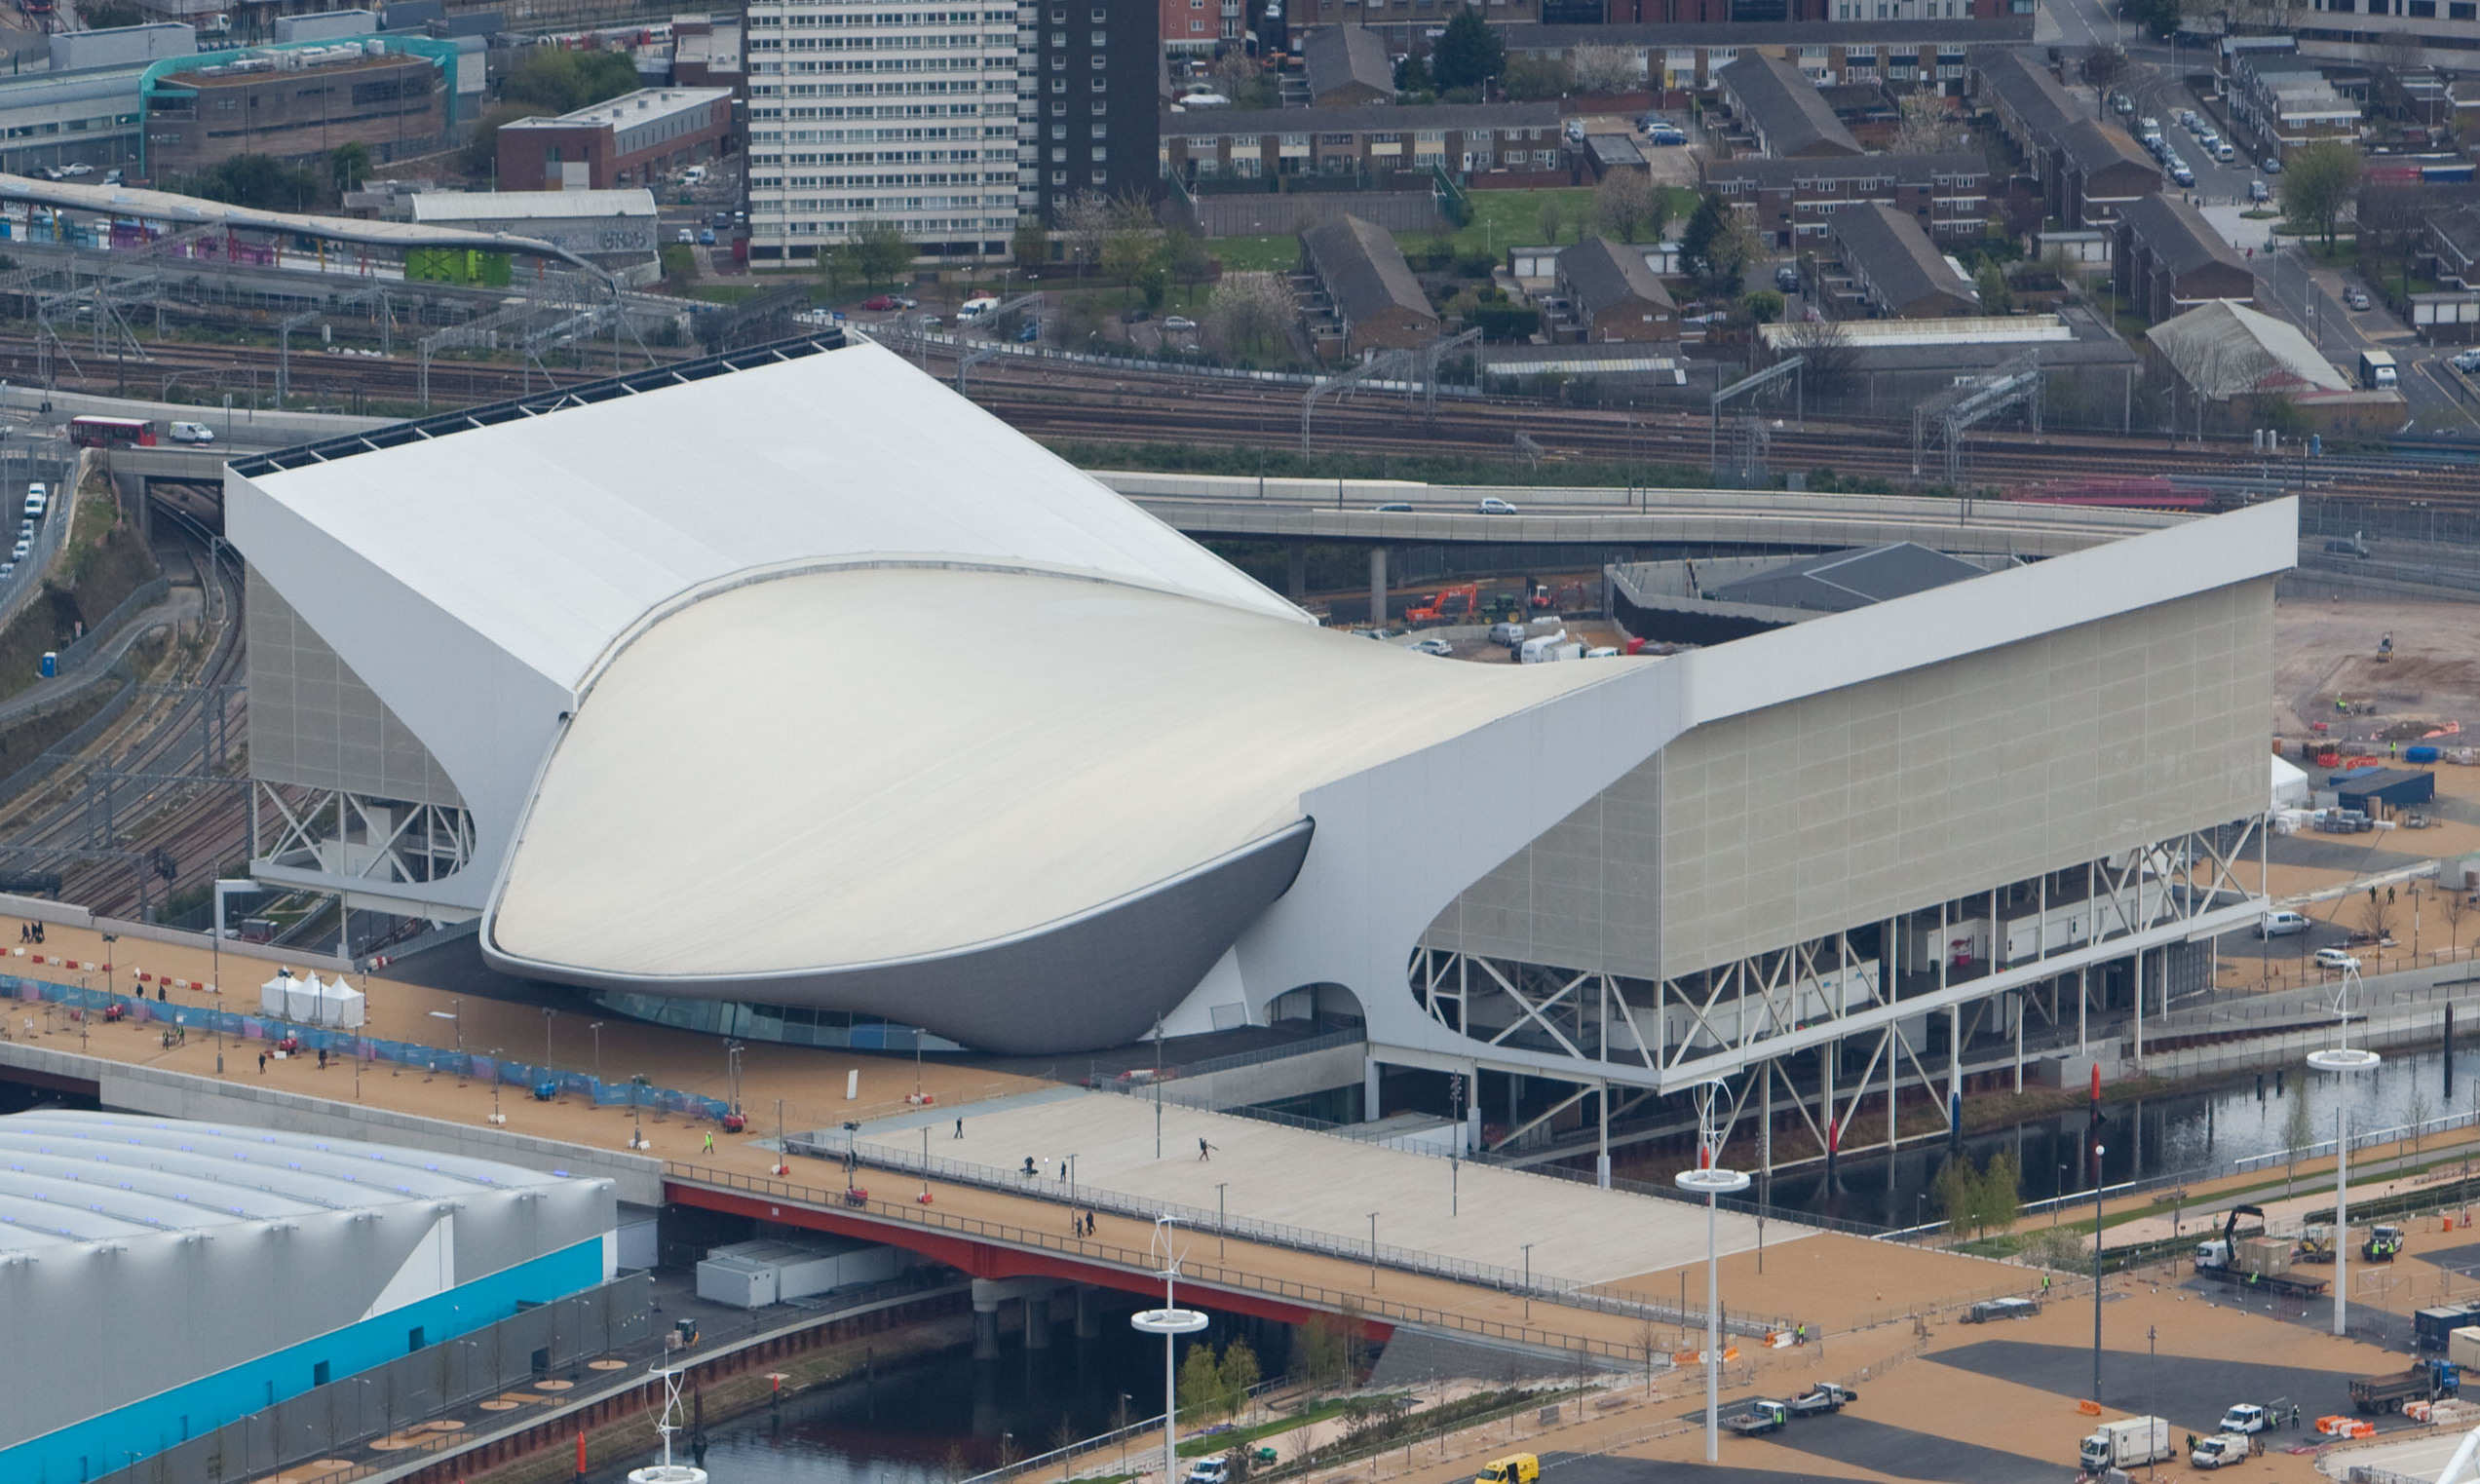 Aerial view of the Olympic Park showing the Aquatics Centre and the Water Polo Arena. Picture taken on 16 April 2012.